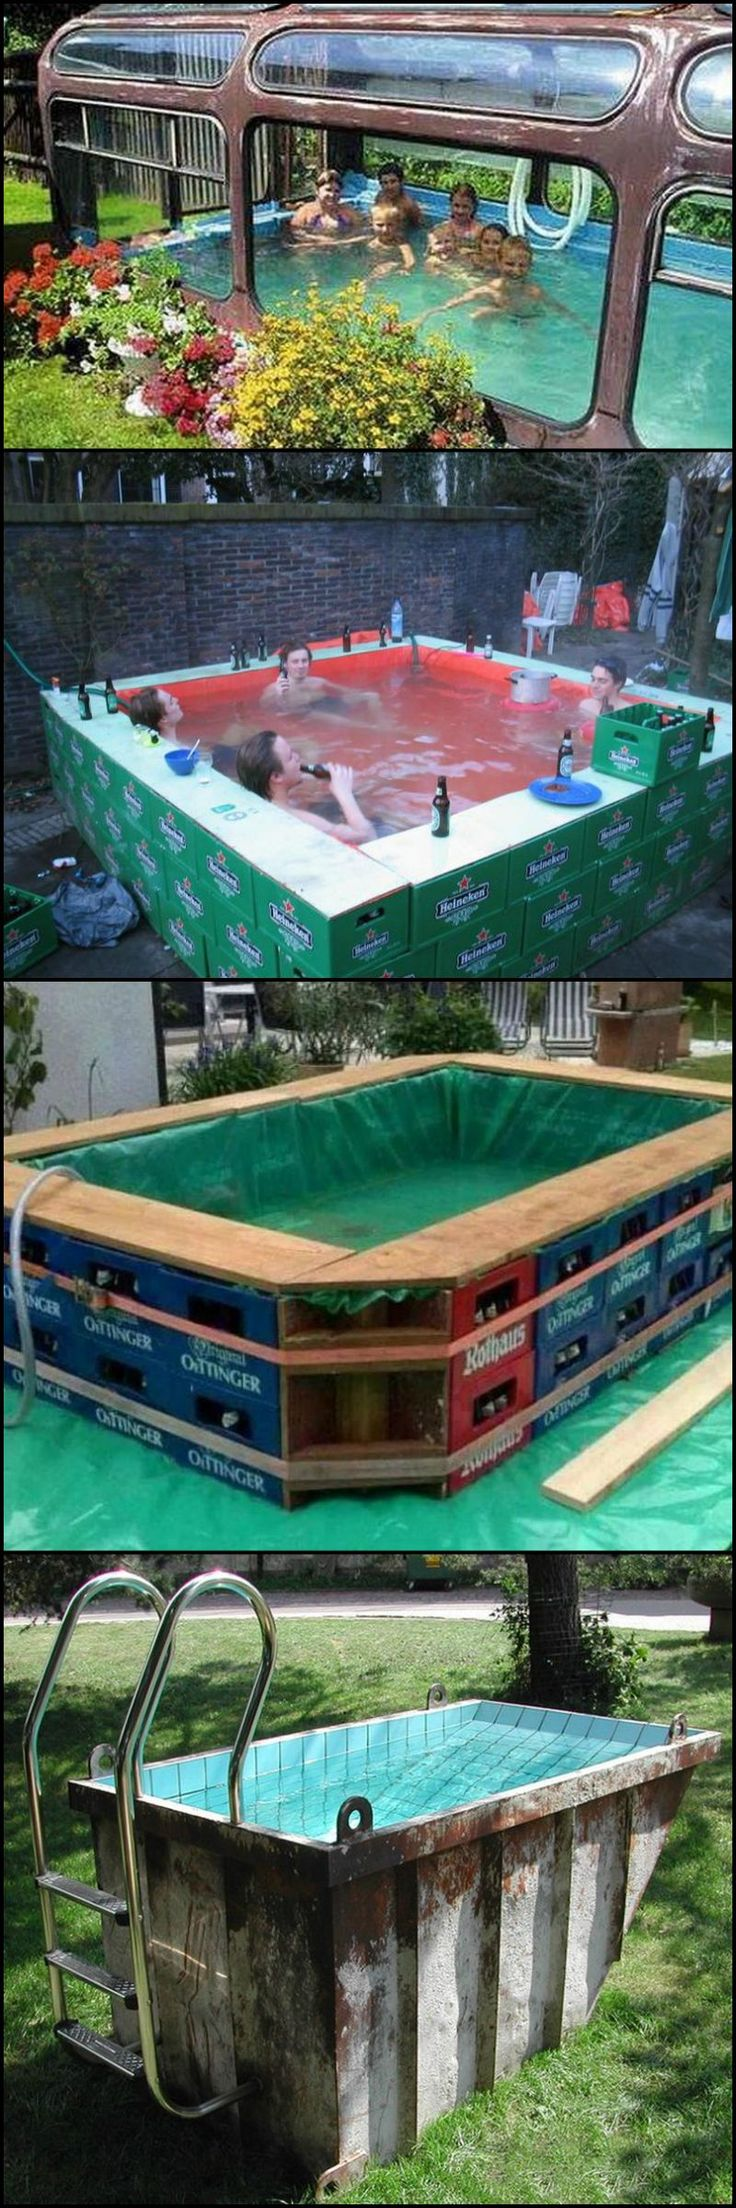 These are interesting, creative, and economical way to make your own swimming pool! You can choose from a wide variety of temporary swimming pools. Depending on your level of construction skills, you can easily build one, and save yourself from the cost of a permanent swimming pool.